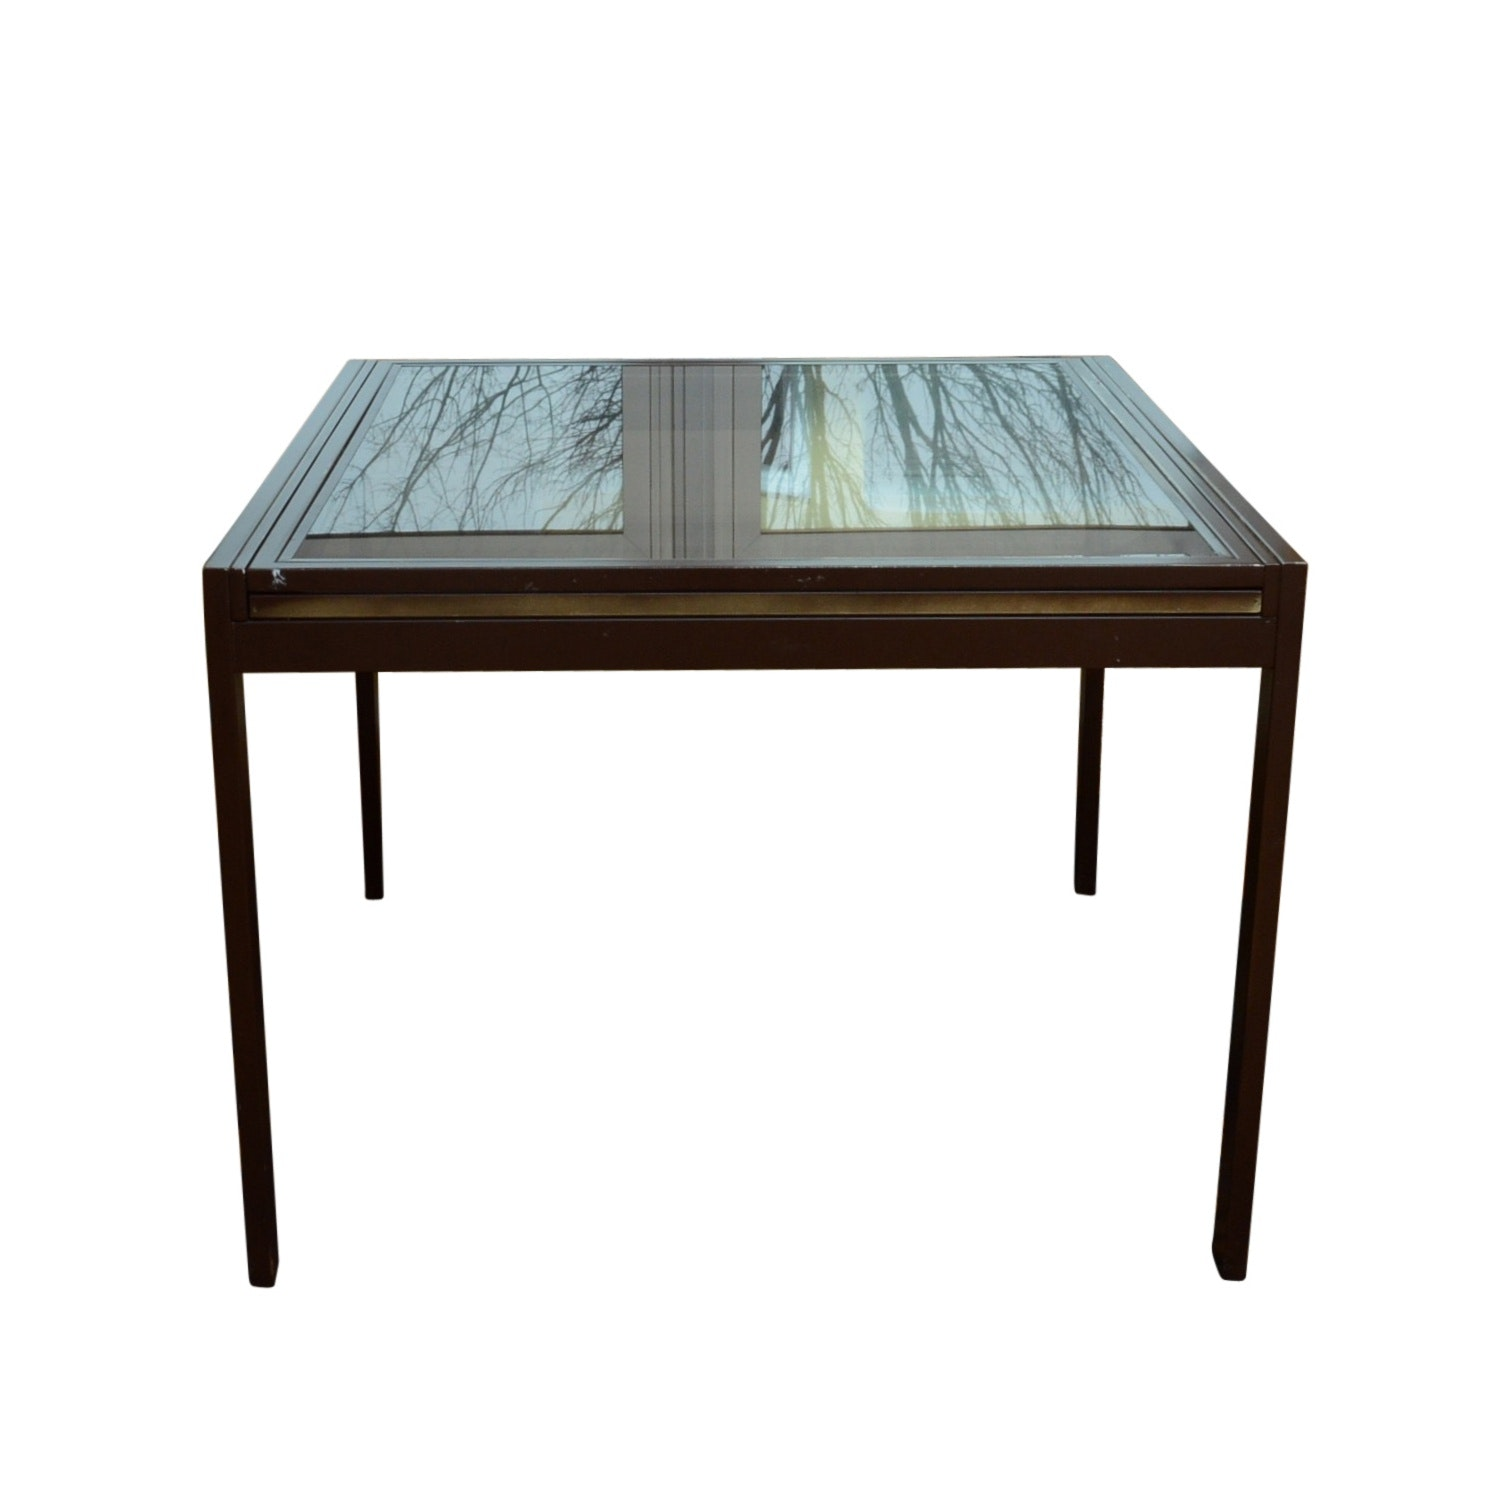 Vintage Glass and Steel Sliding Top Kitchen Table